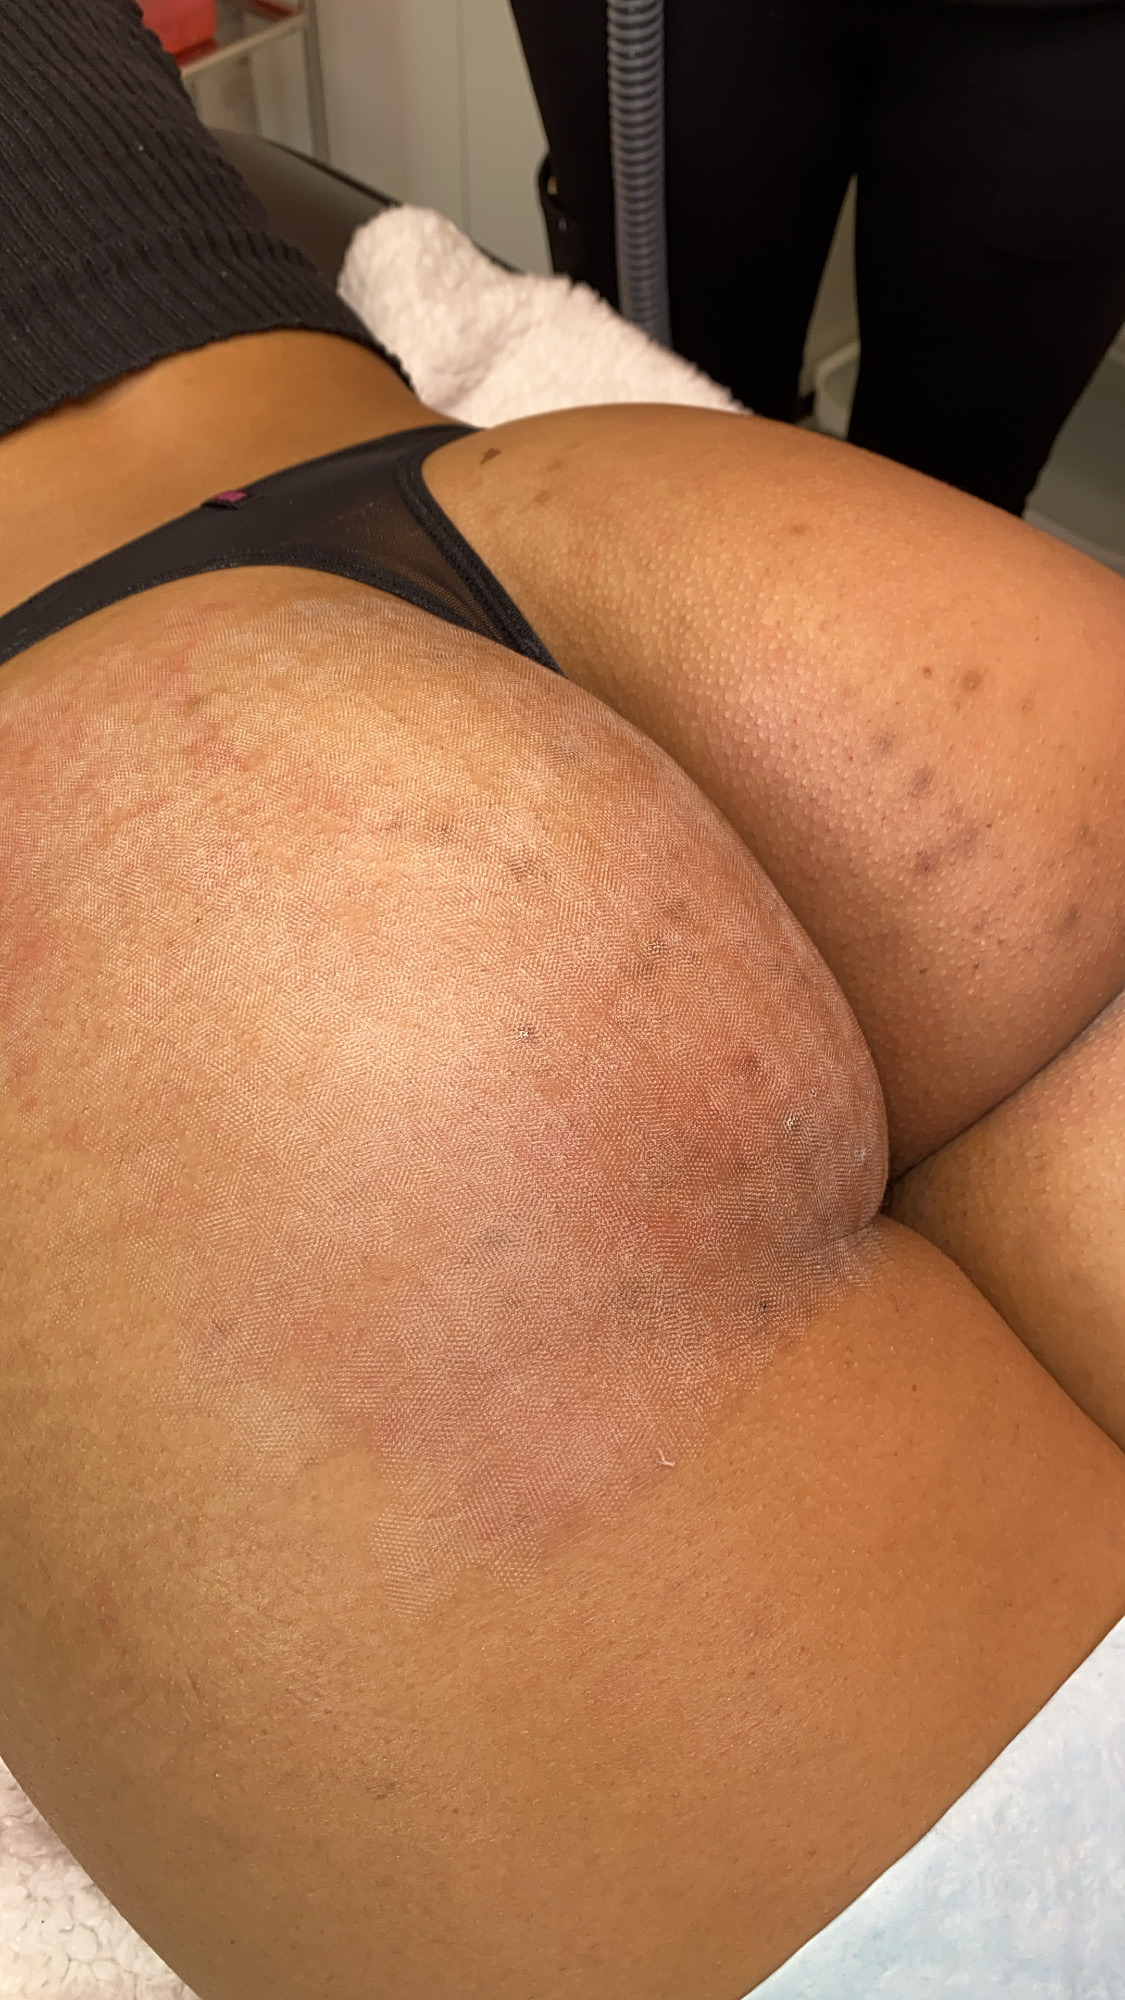 Post-Erbium Yag treatment on the buttocks to treat acne and acne scarring.